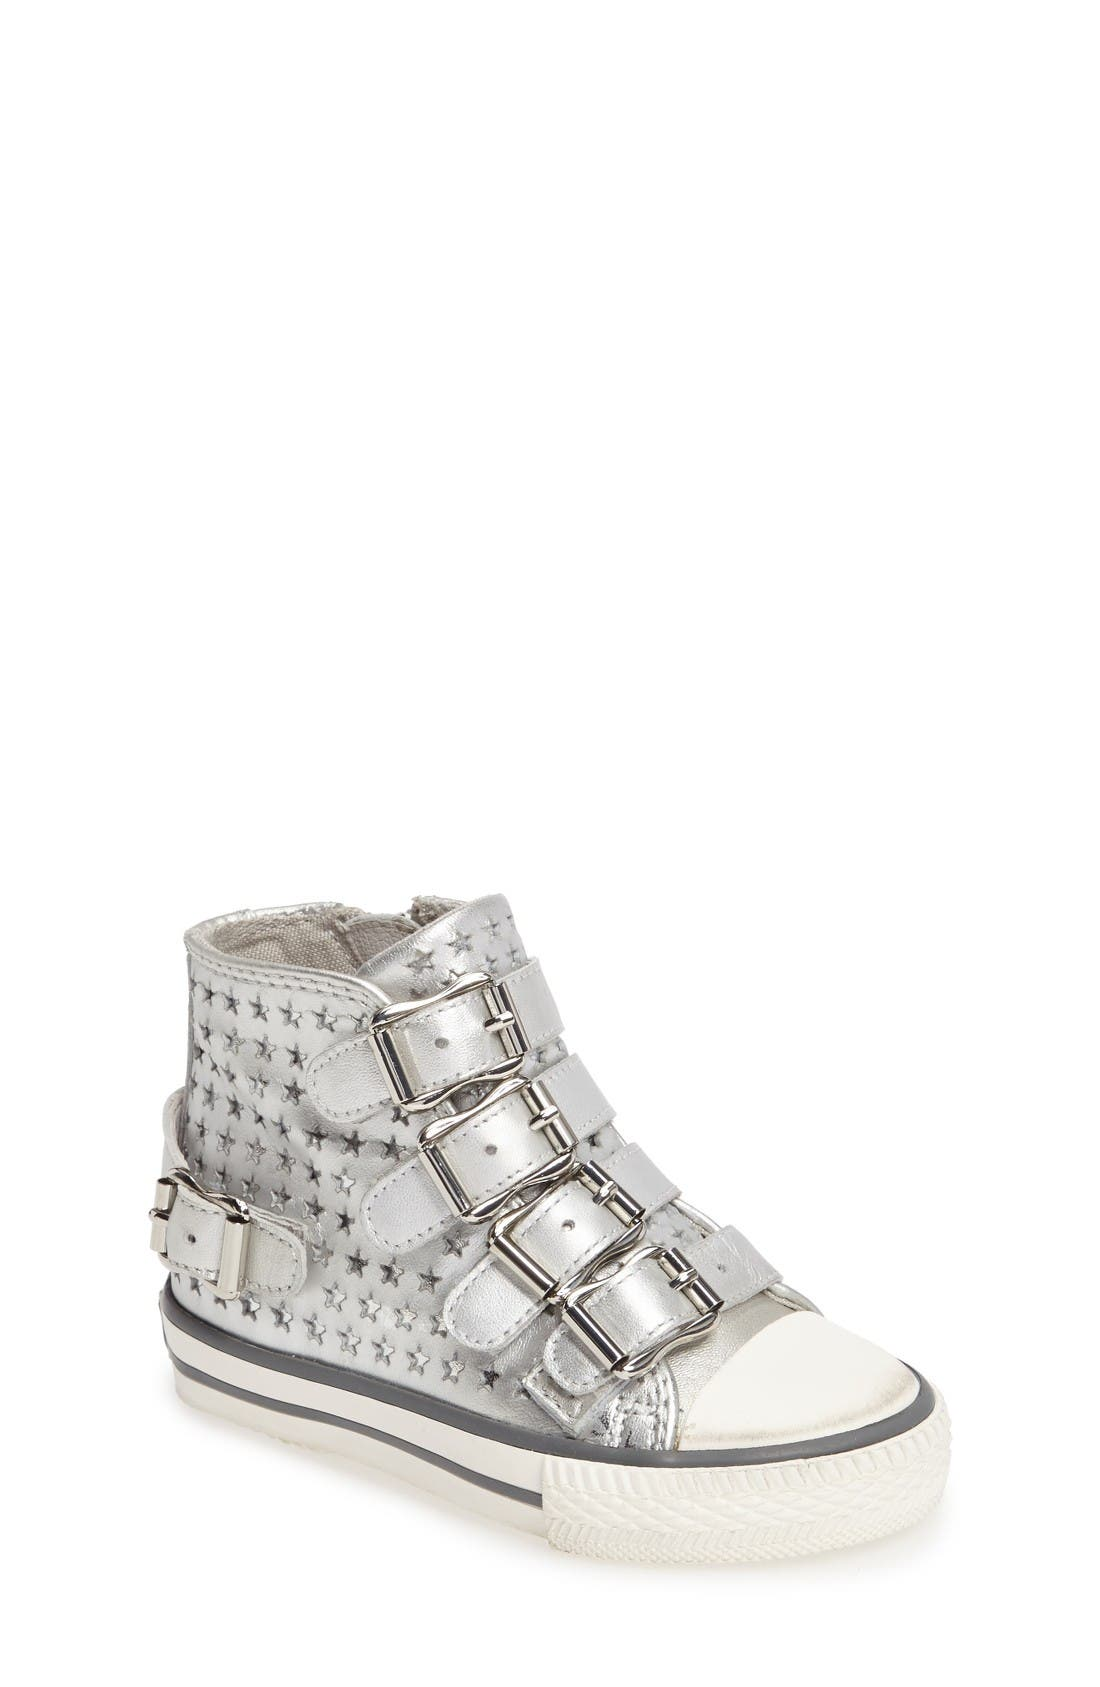 ASH Vava Starboss Buckle Strap High Top Sneaker